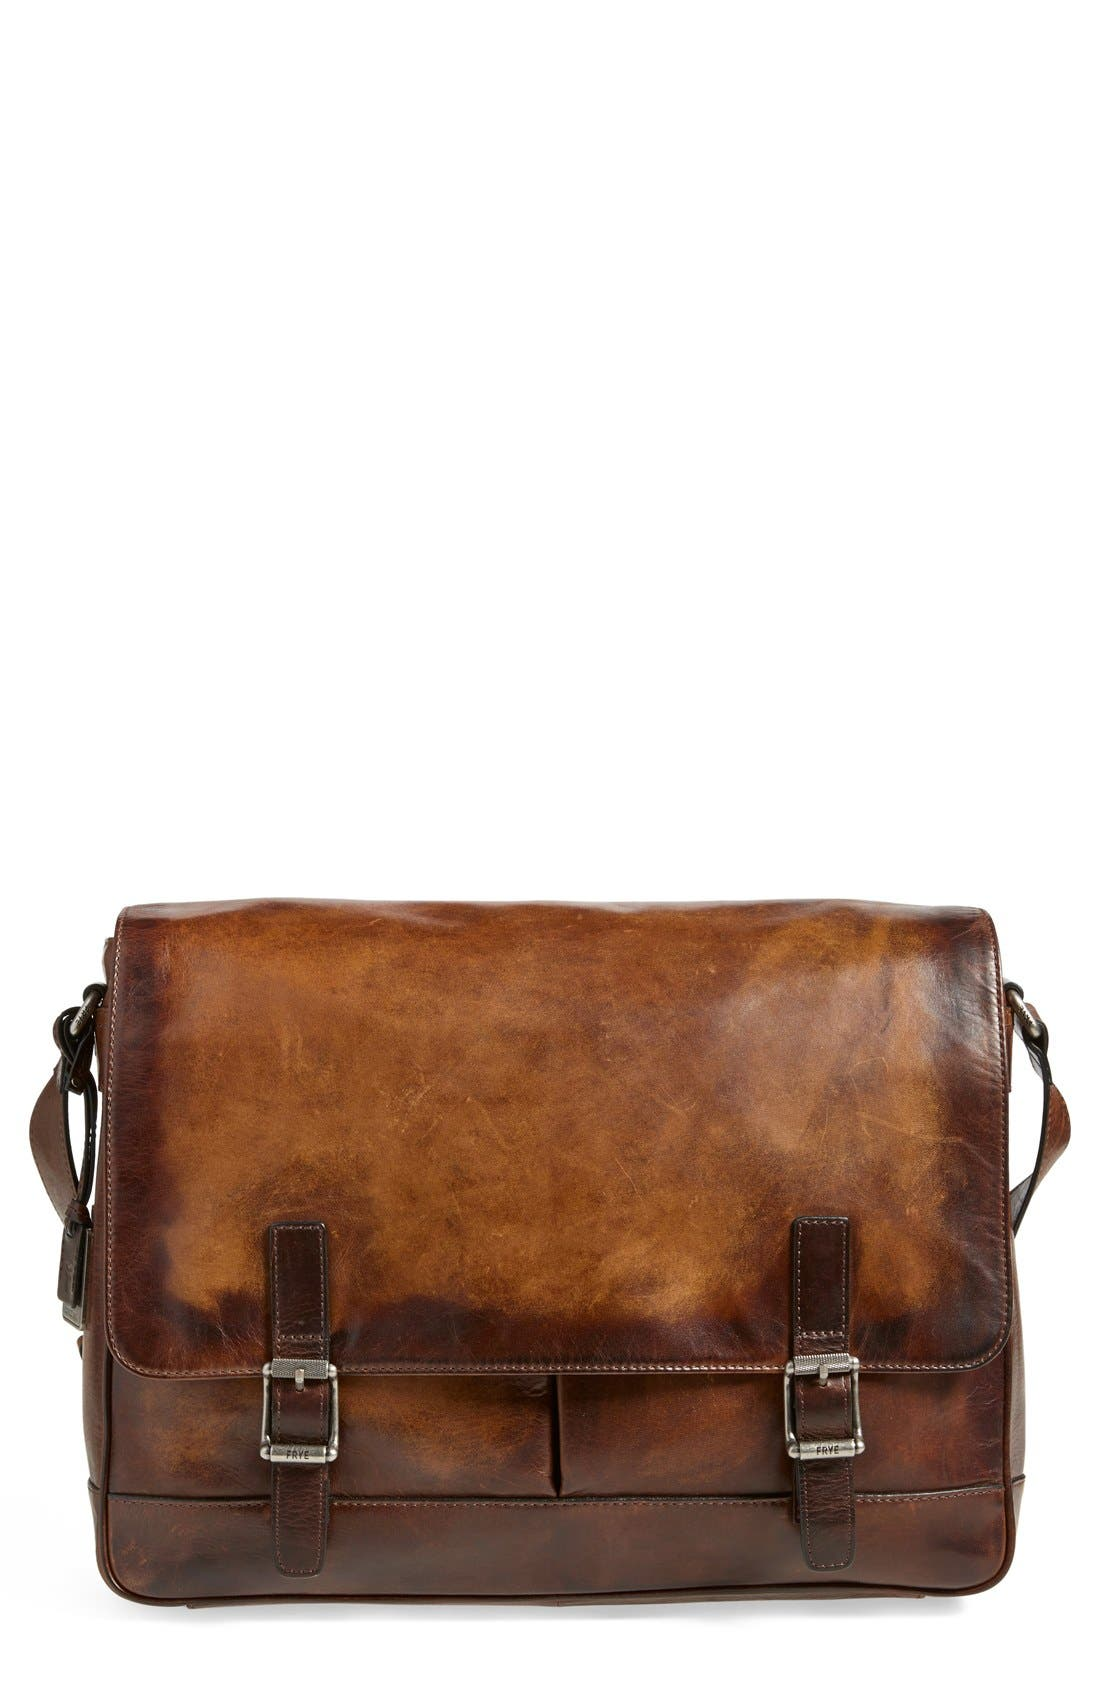 Frye 'Oliver' Leather Messenger Bag